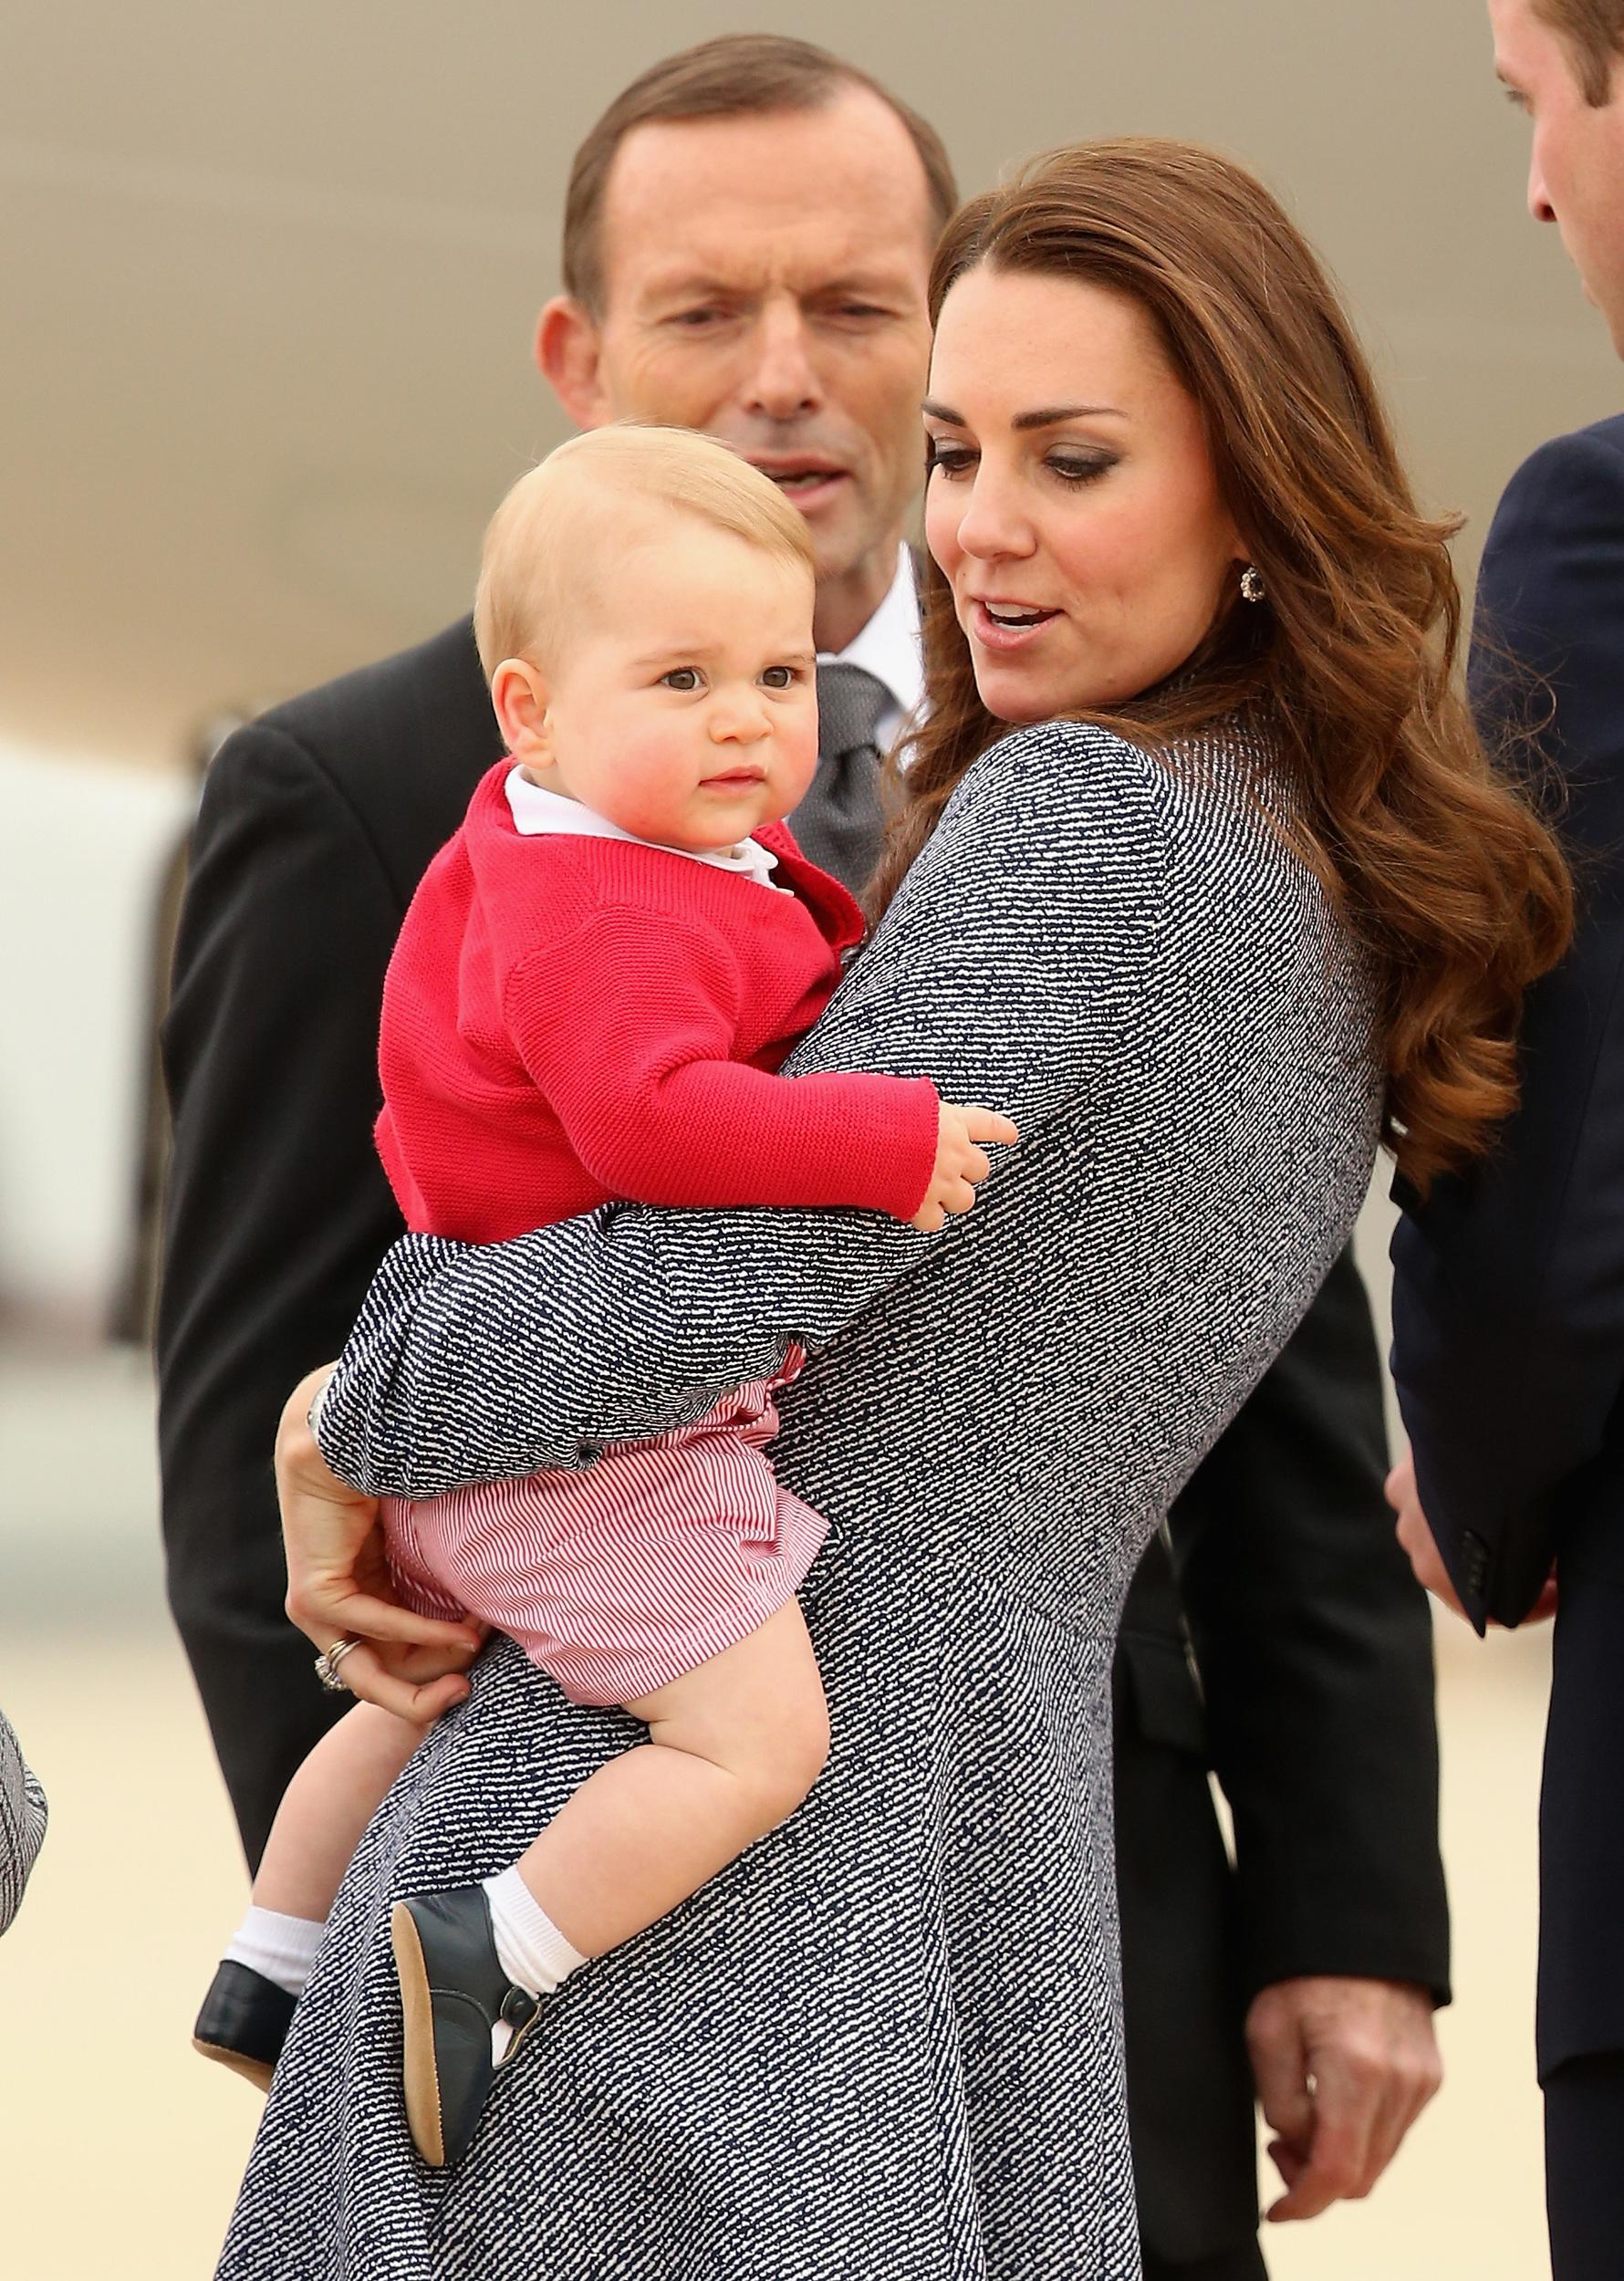 Catherine, Duchess of Cambridge holds Prince George of Cambridge as they leave Fairbairne Airbase to head back to the UK after finishing their Royal Visit to Australia.